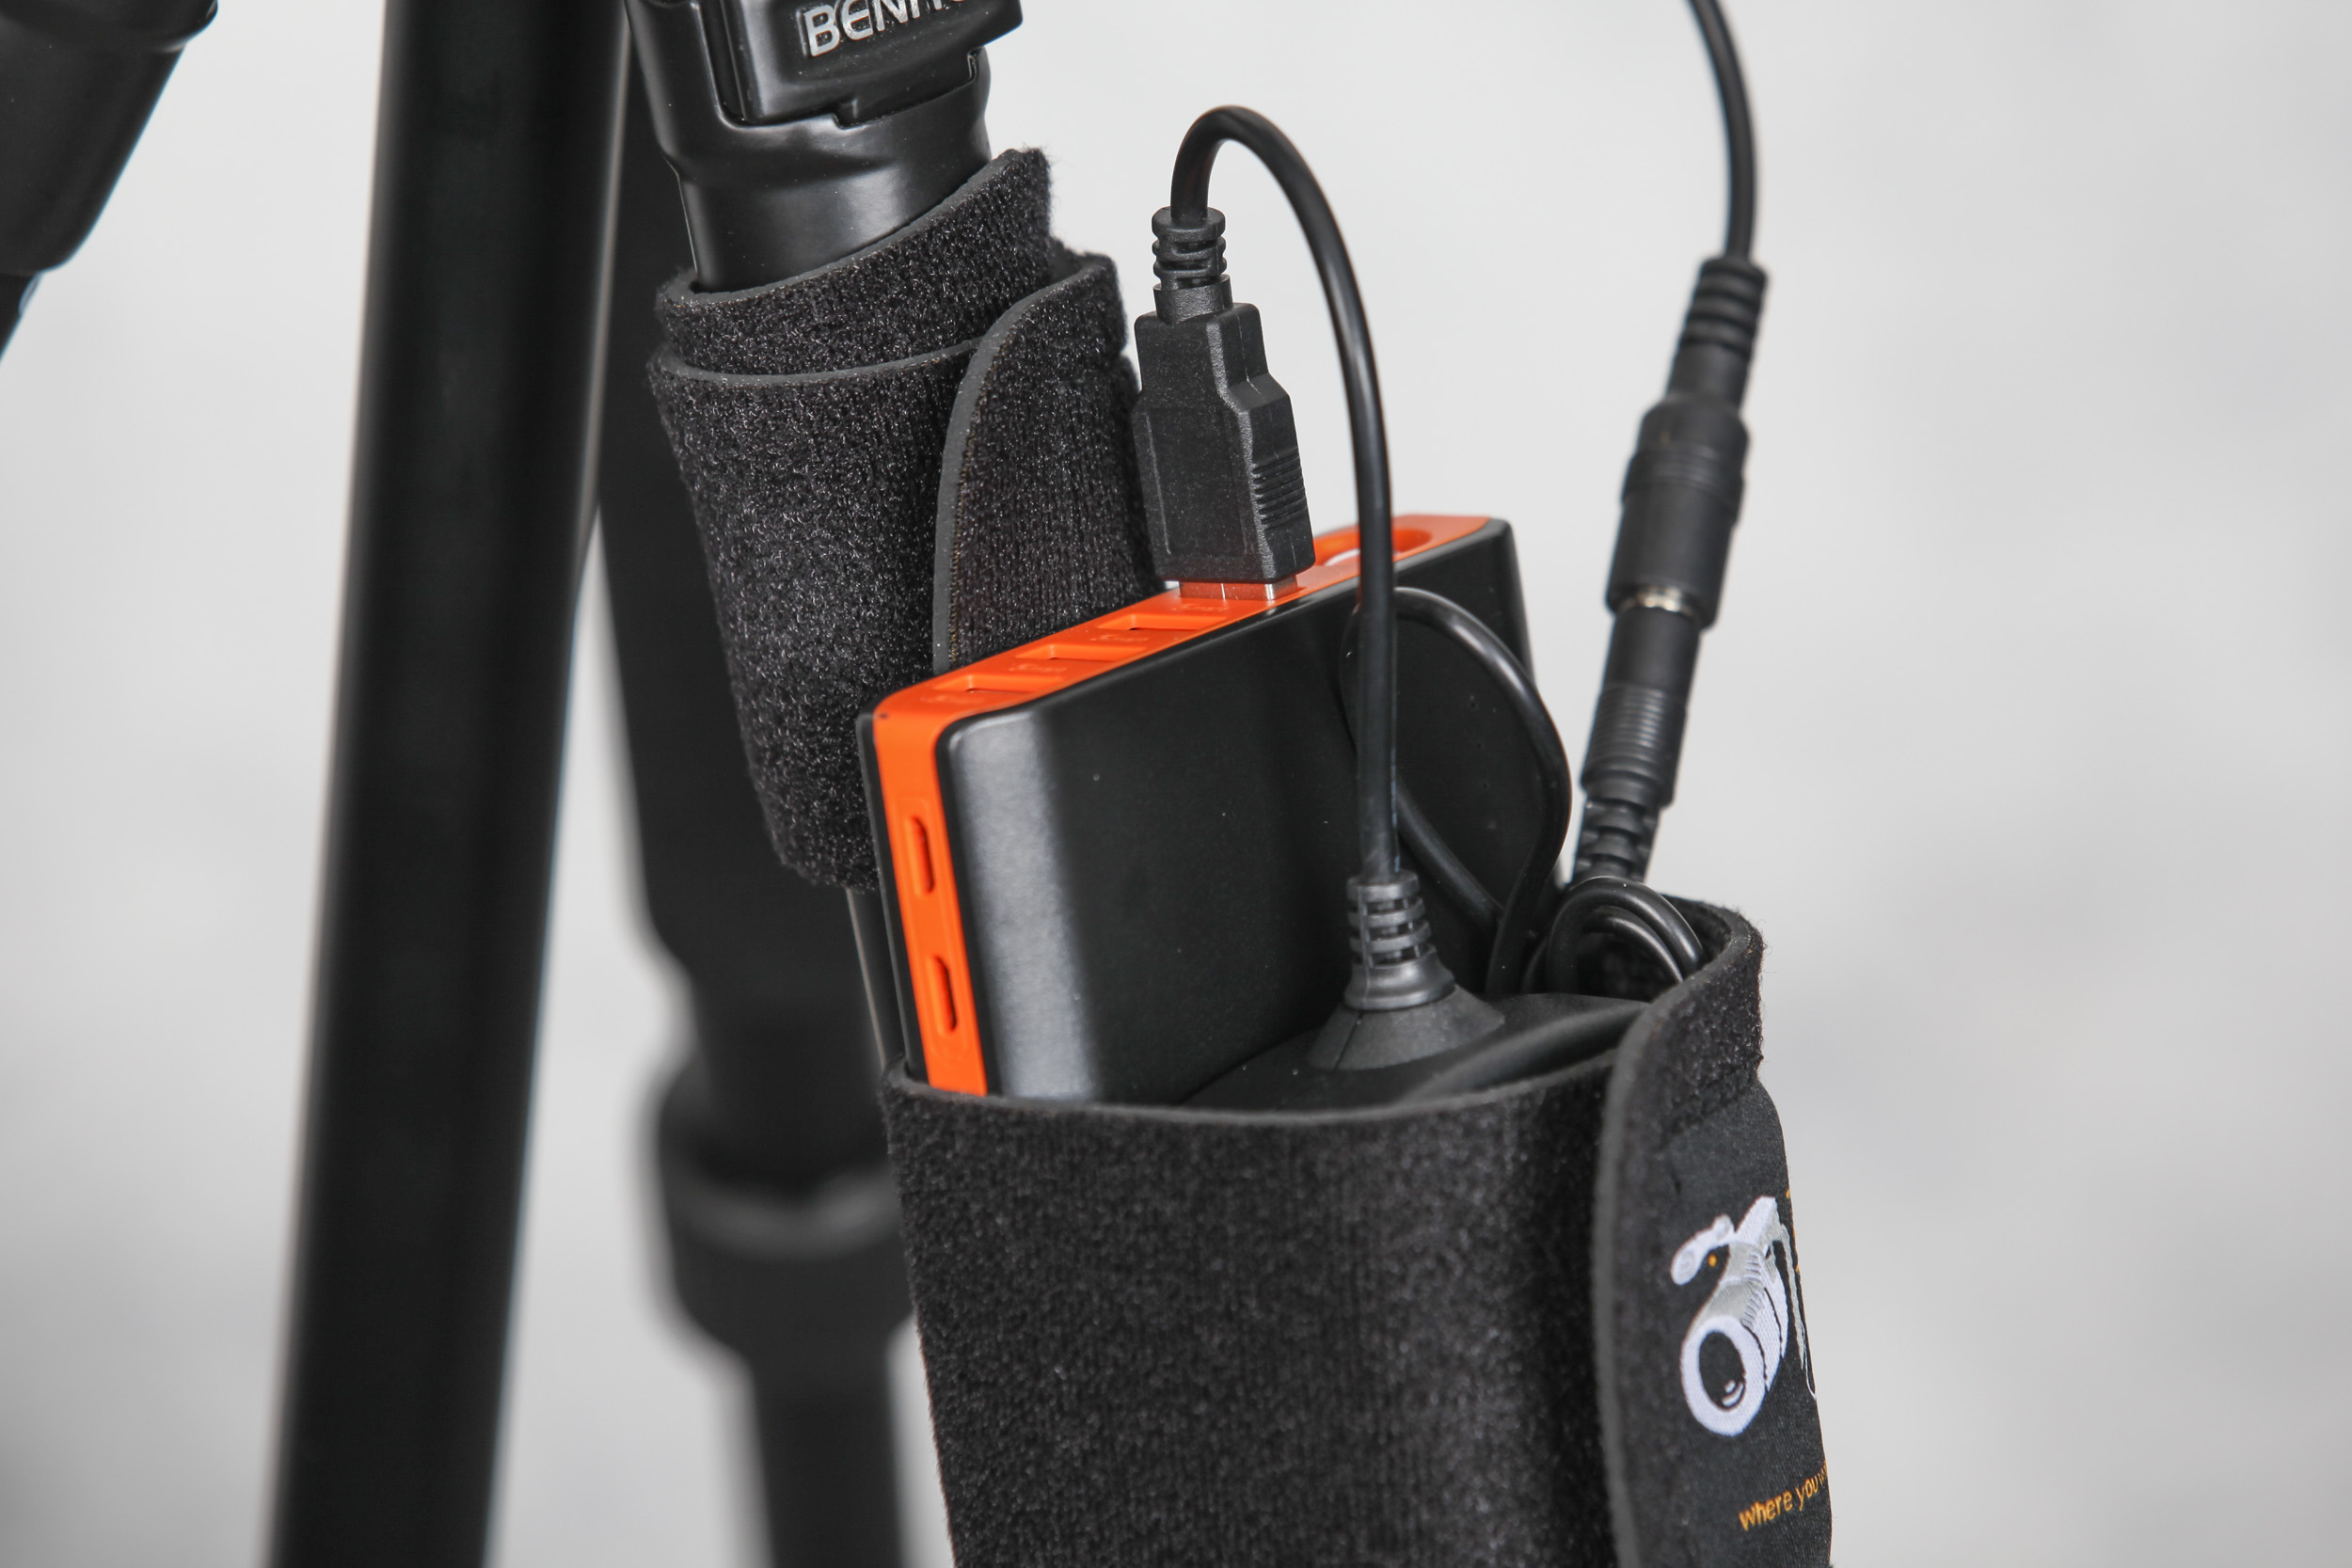 Using External Battery Packs on Sony A7 (and other) Cameras